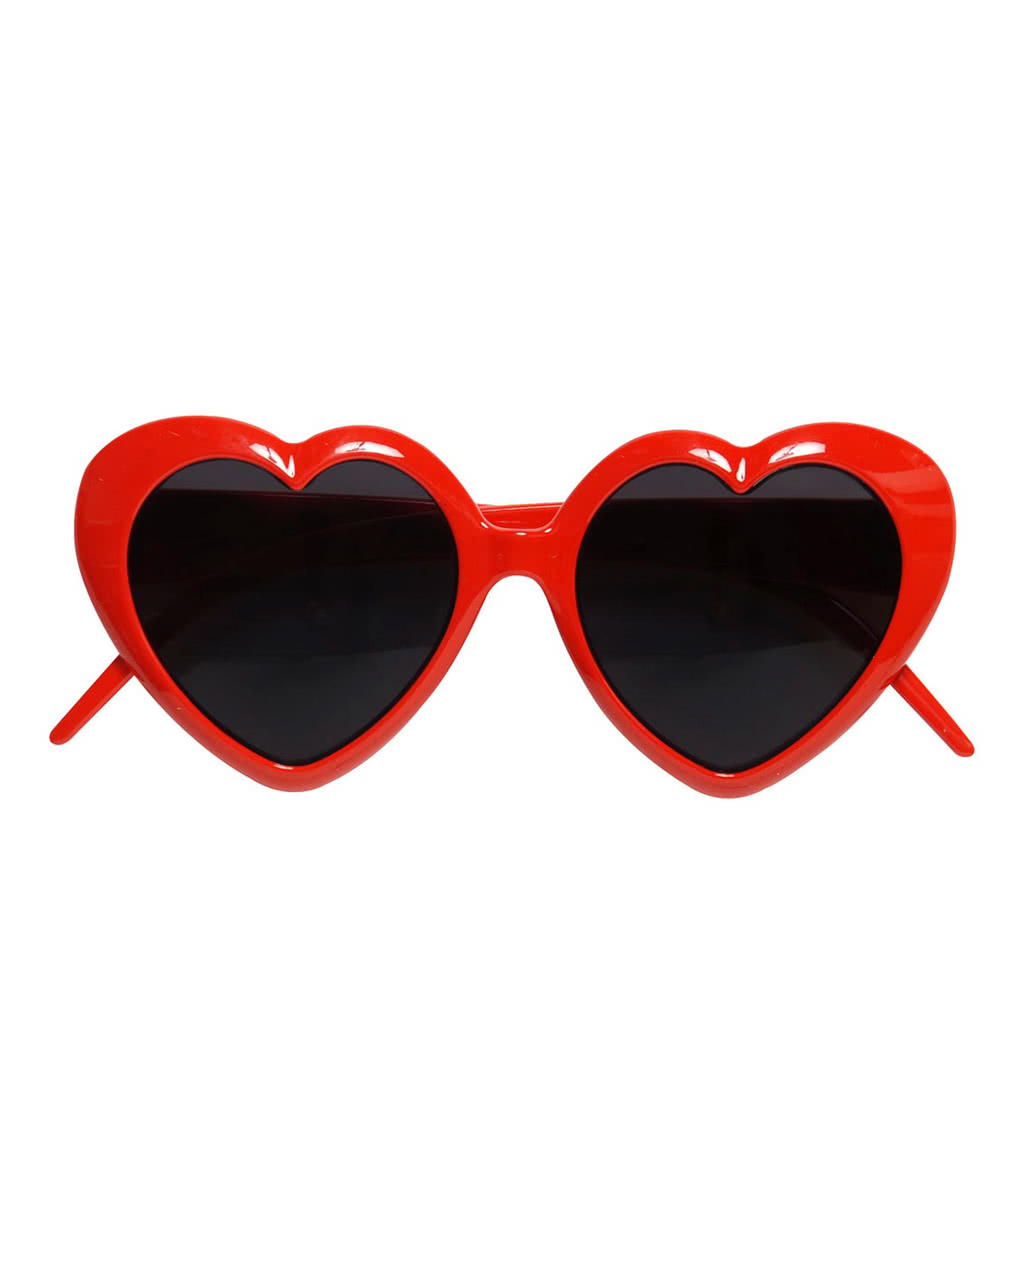 2869f5b26fa heart sunglasses